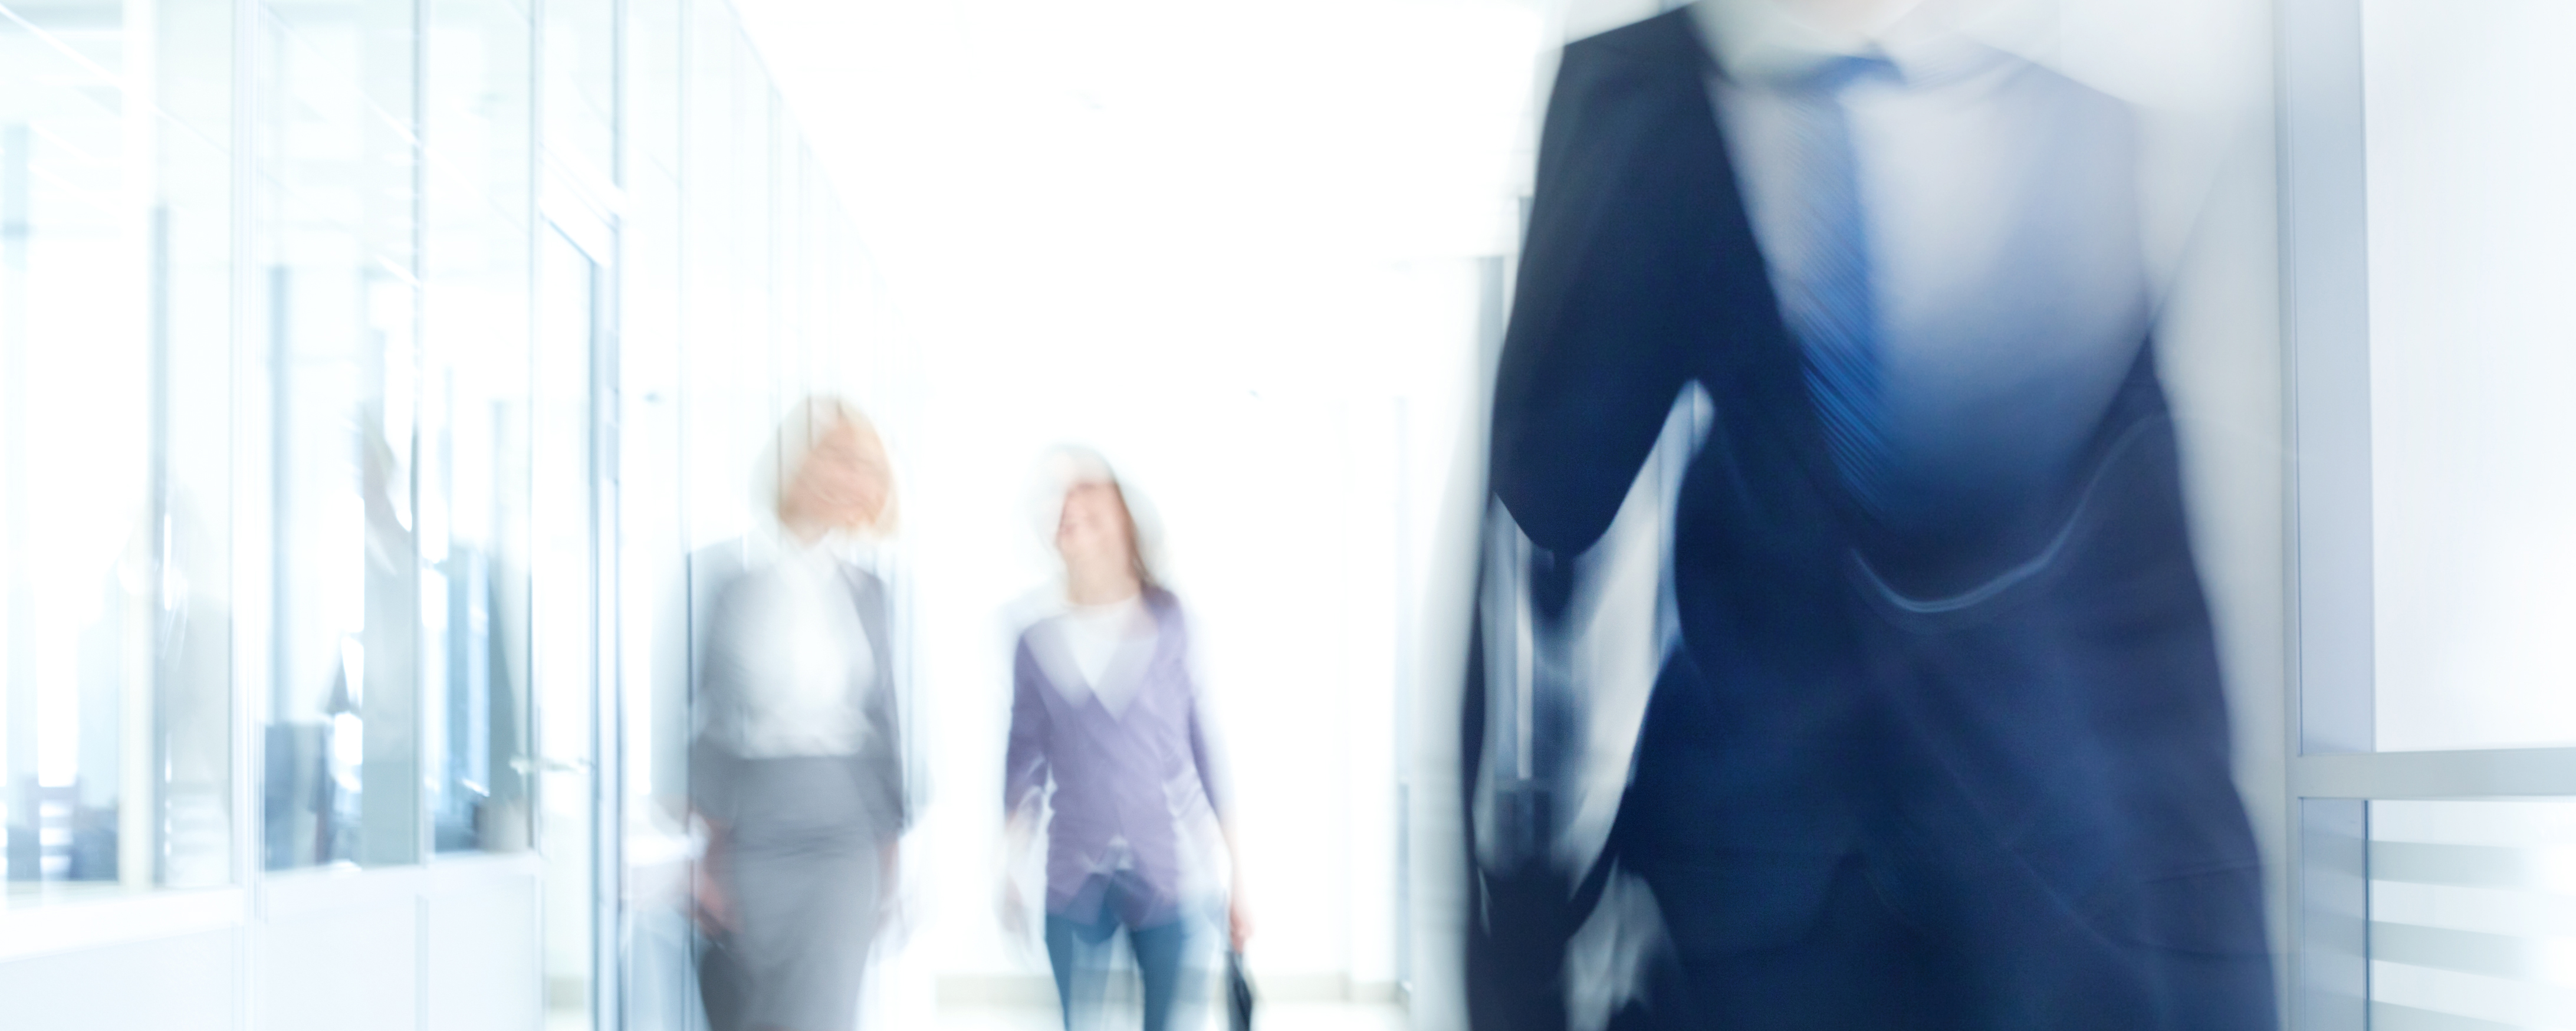 HR departments feel the strain of mental health issues